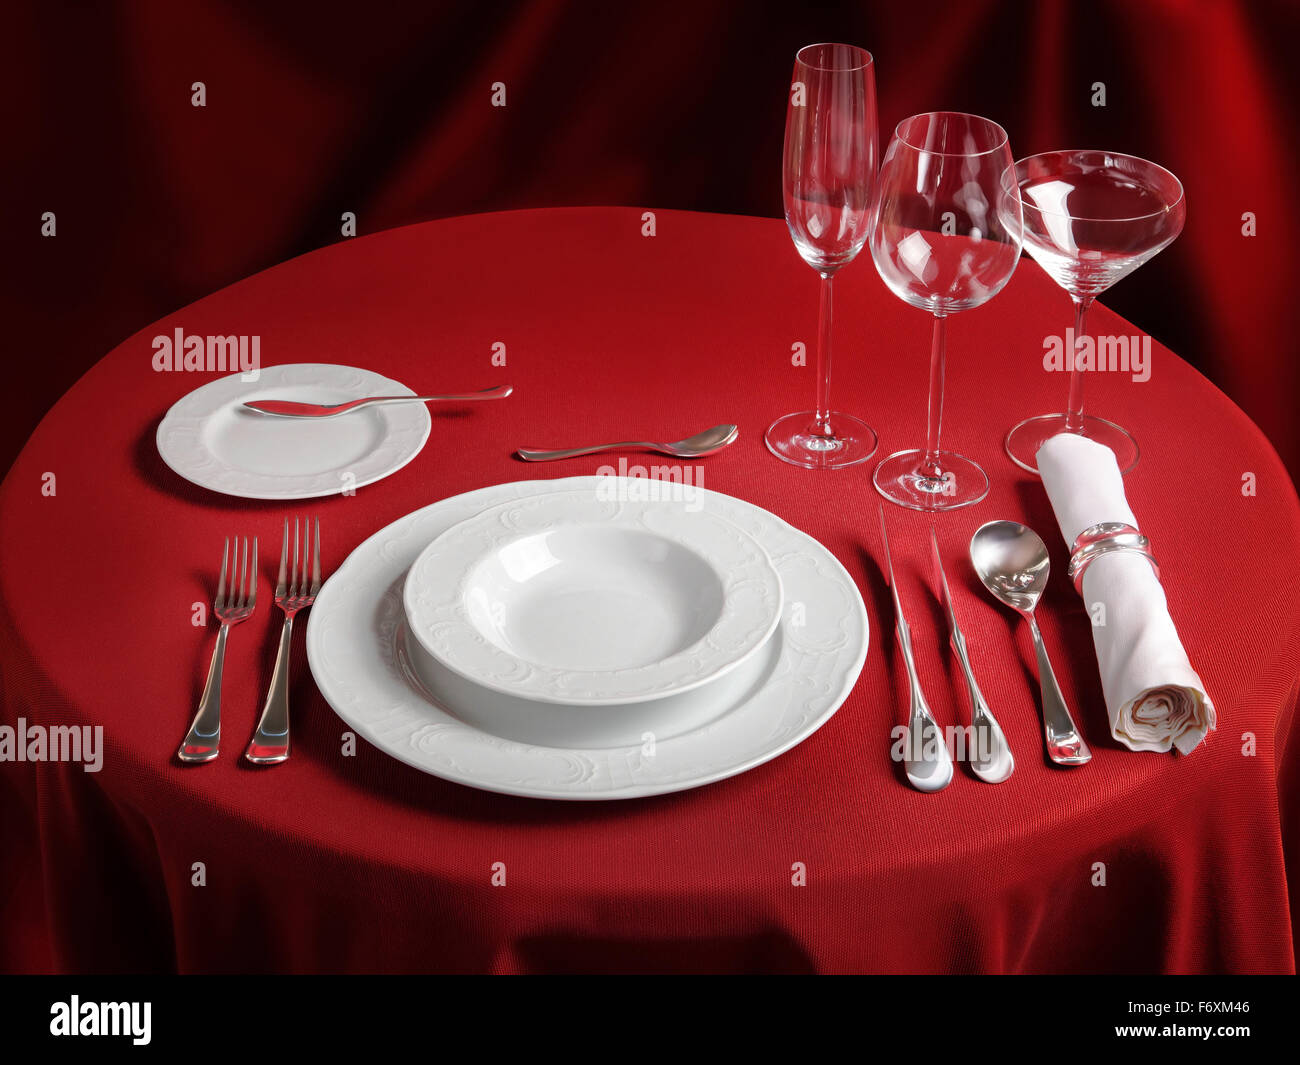 Banquet Table Setting Part - 41: Red Table With Dinner Set. Professional Banquet Table Setting